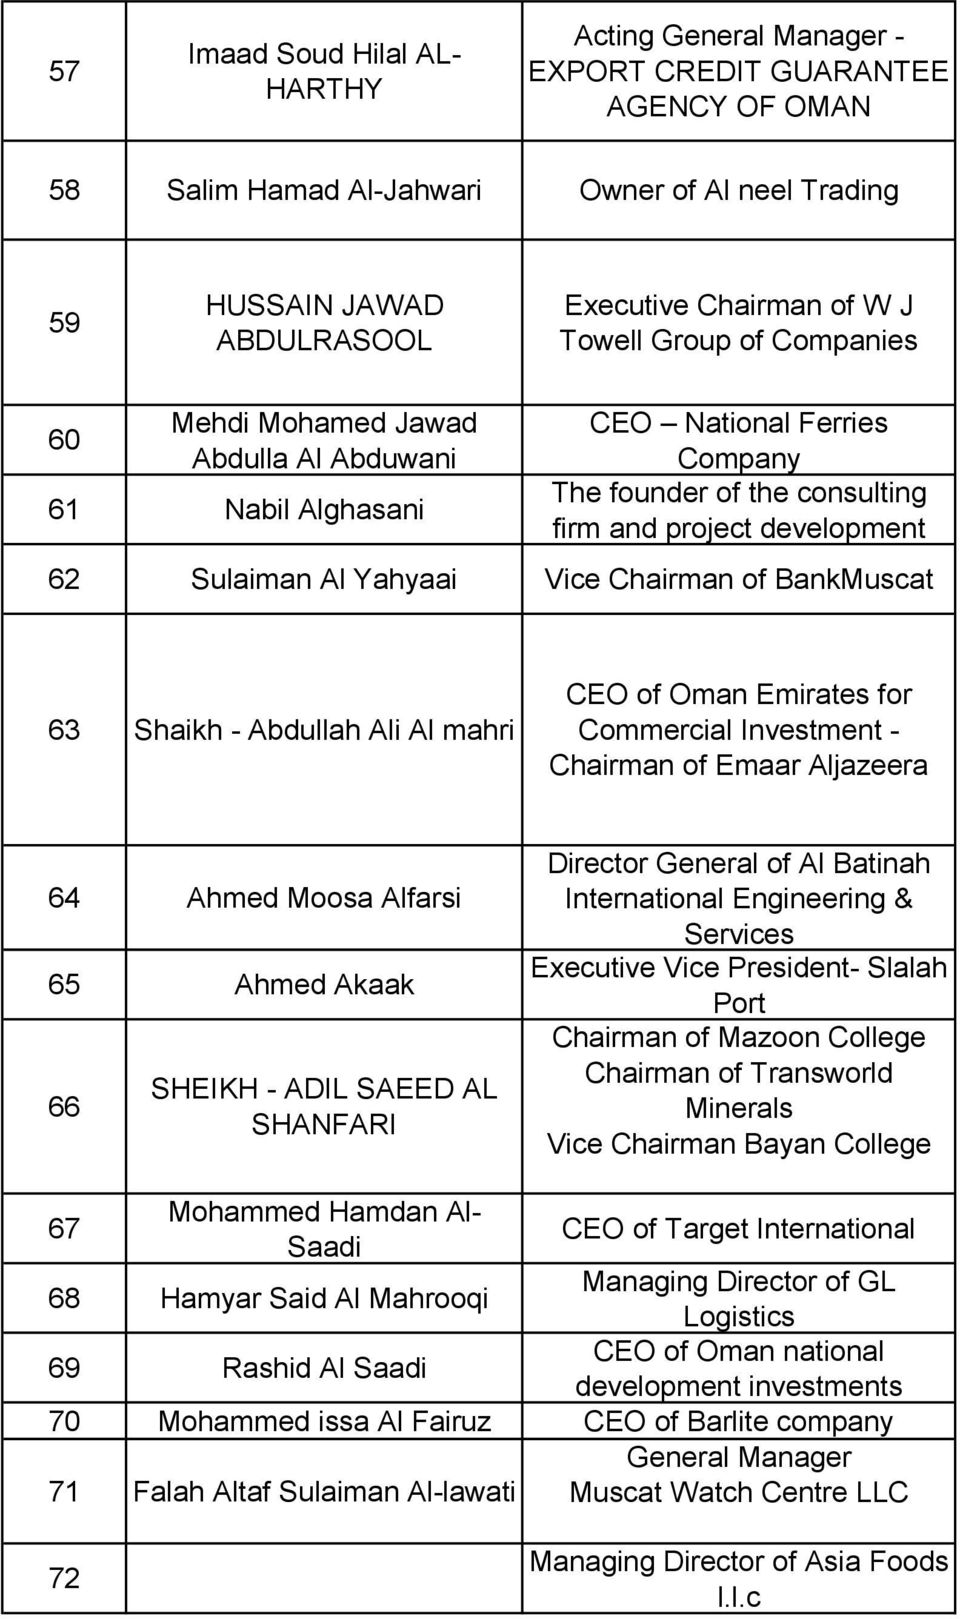 Yahyaai Vice Chairman of BankMuscat 63 Shaikh - Abdullah Ali Al mahri CEO of Oman Emirates for Commercial Investment - Chairman of Emaar Aljazeera 64 Ahmed Moosa Alfarsi 65 Ahmed Akaak 66 SHEIKH -